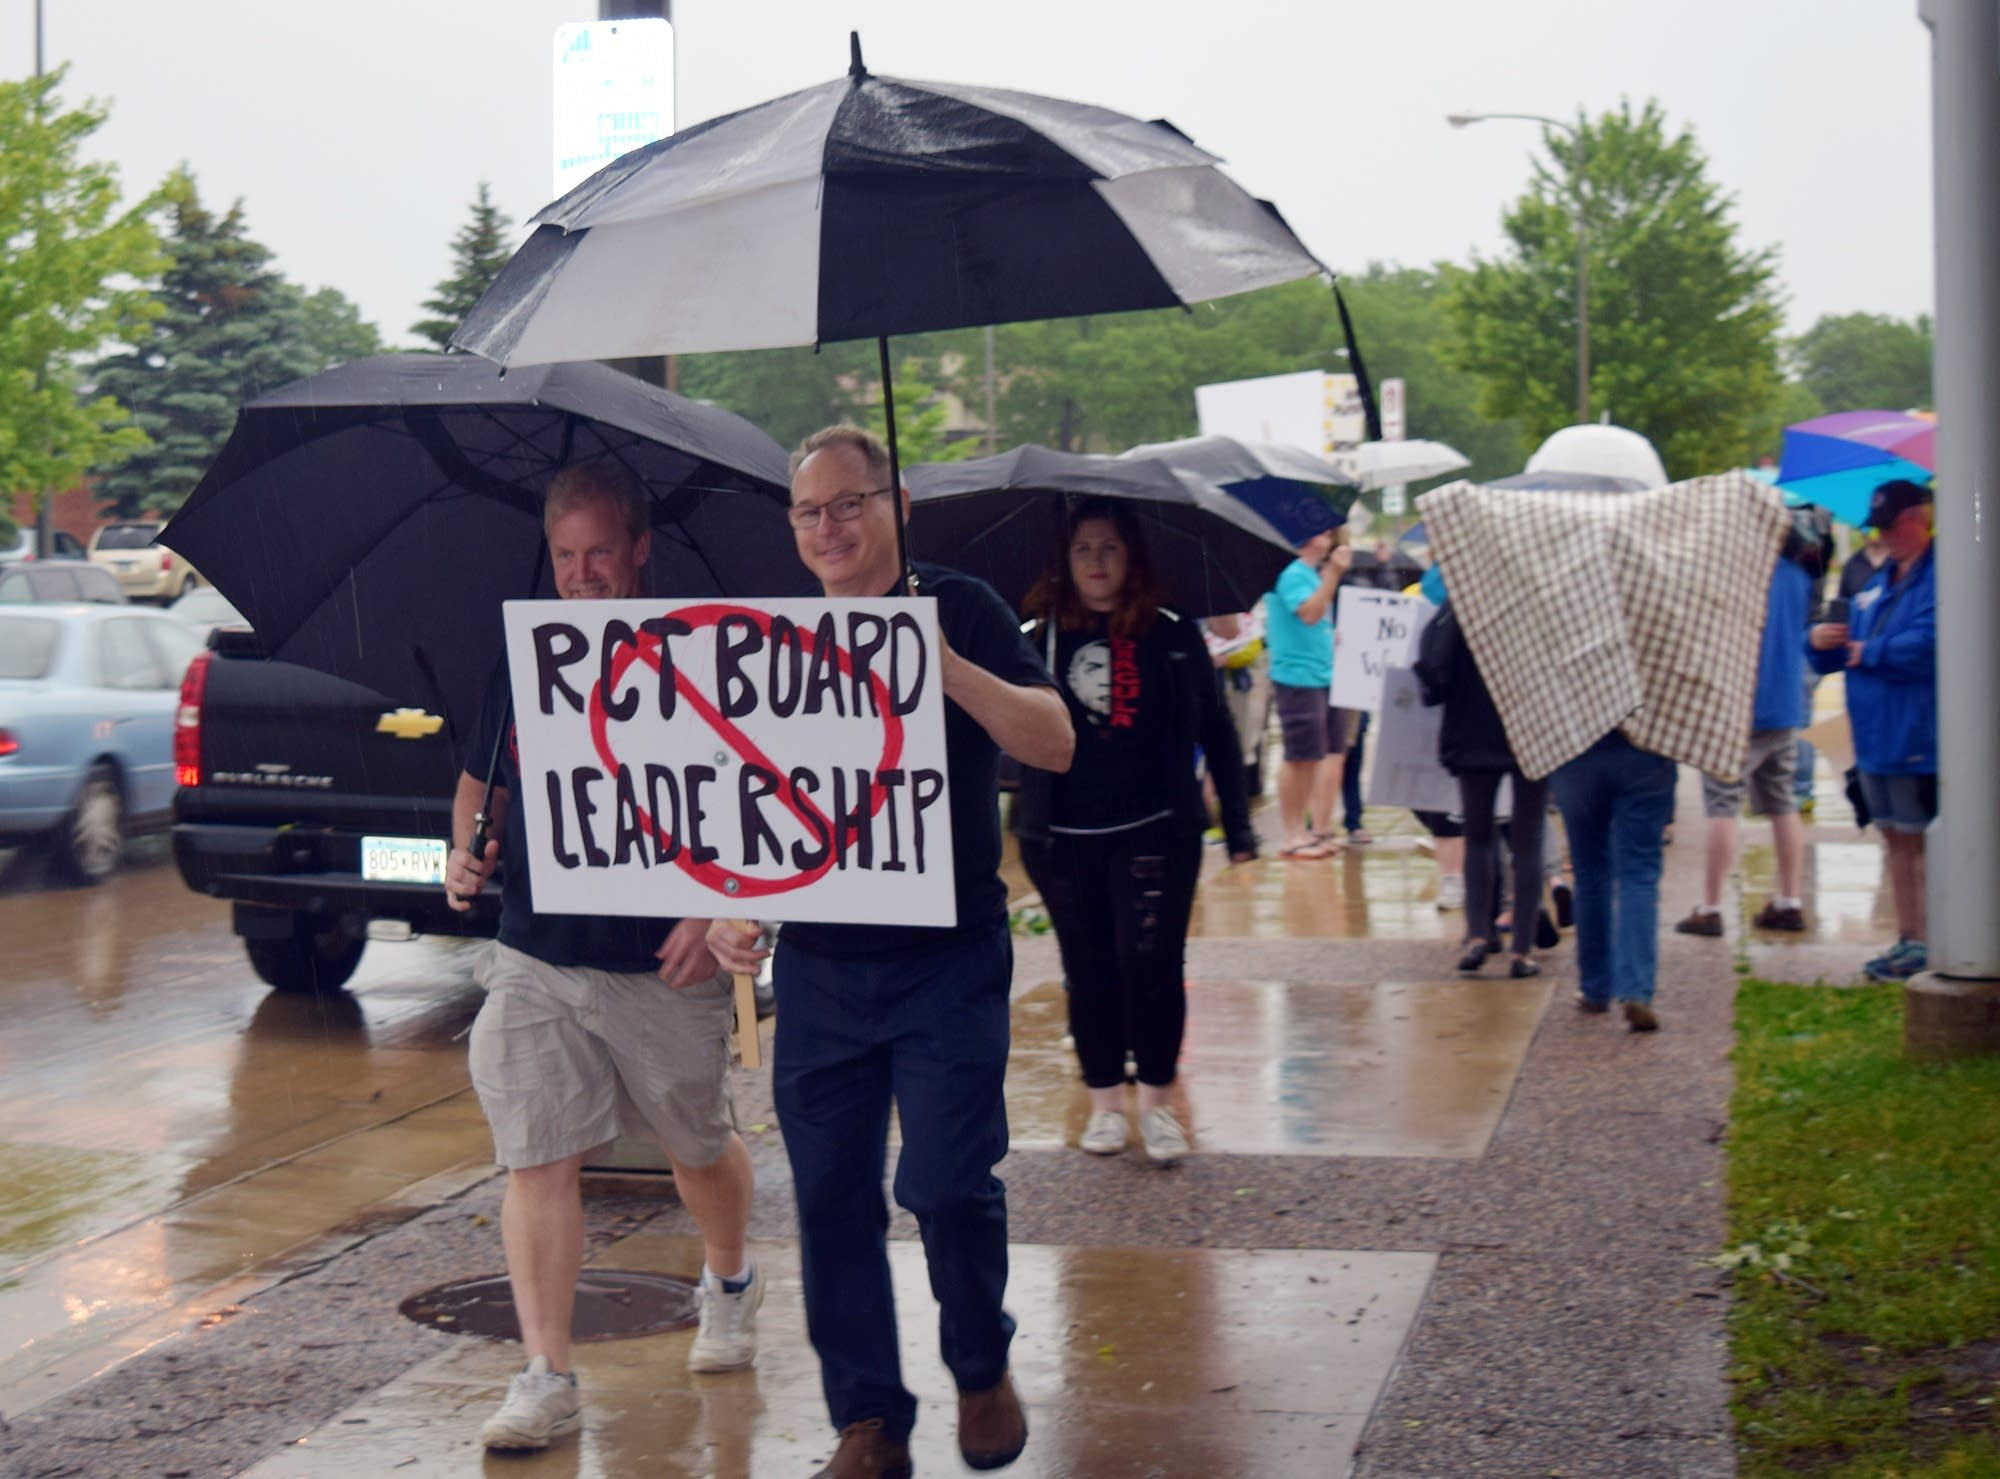 Rochester Civic Theatre volunteers protest the theater's board in June.